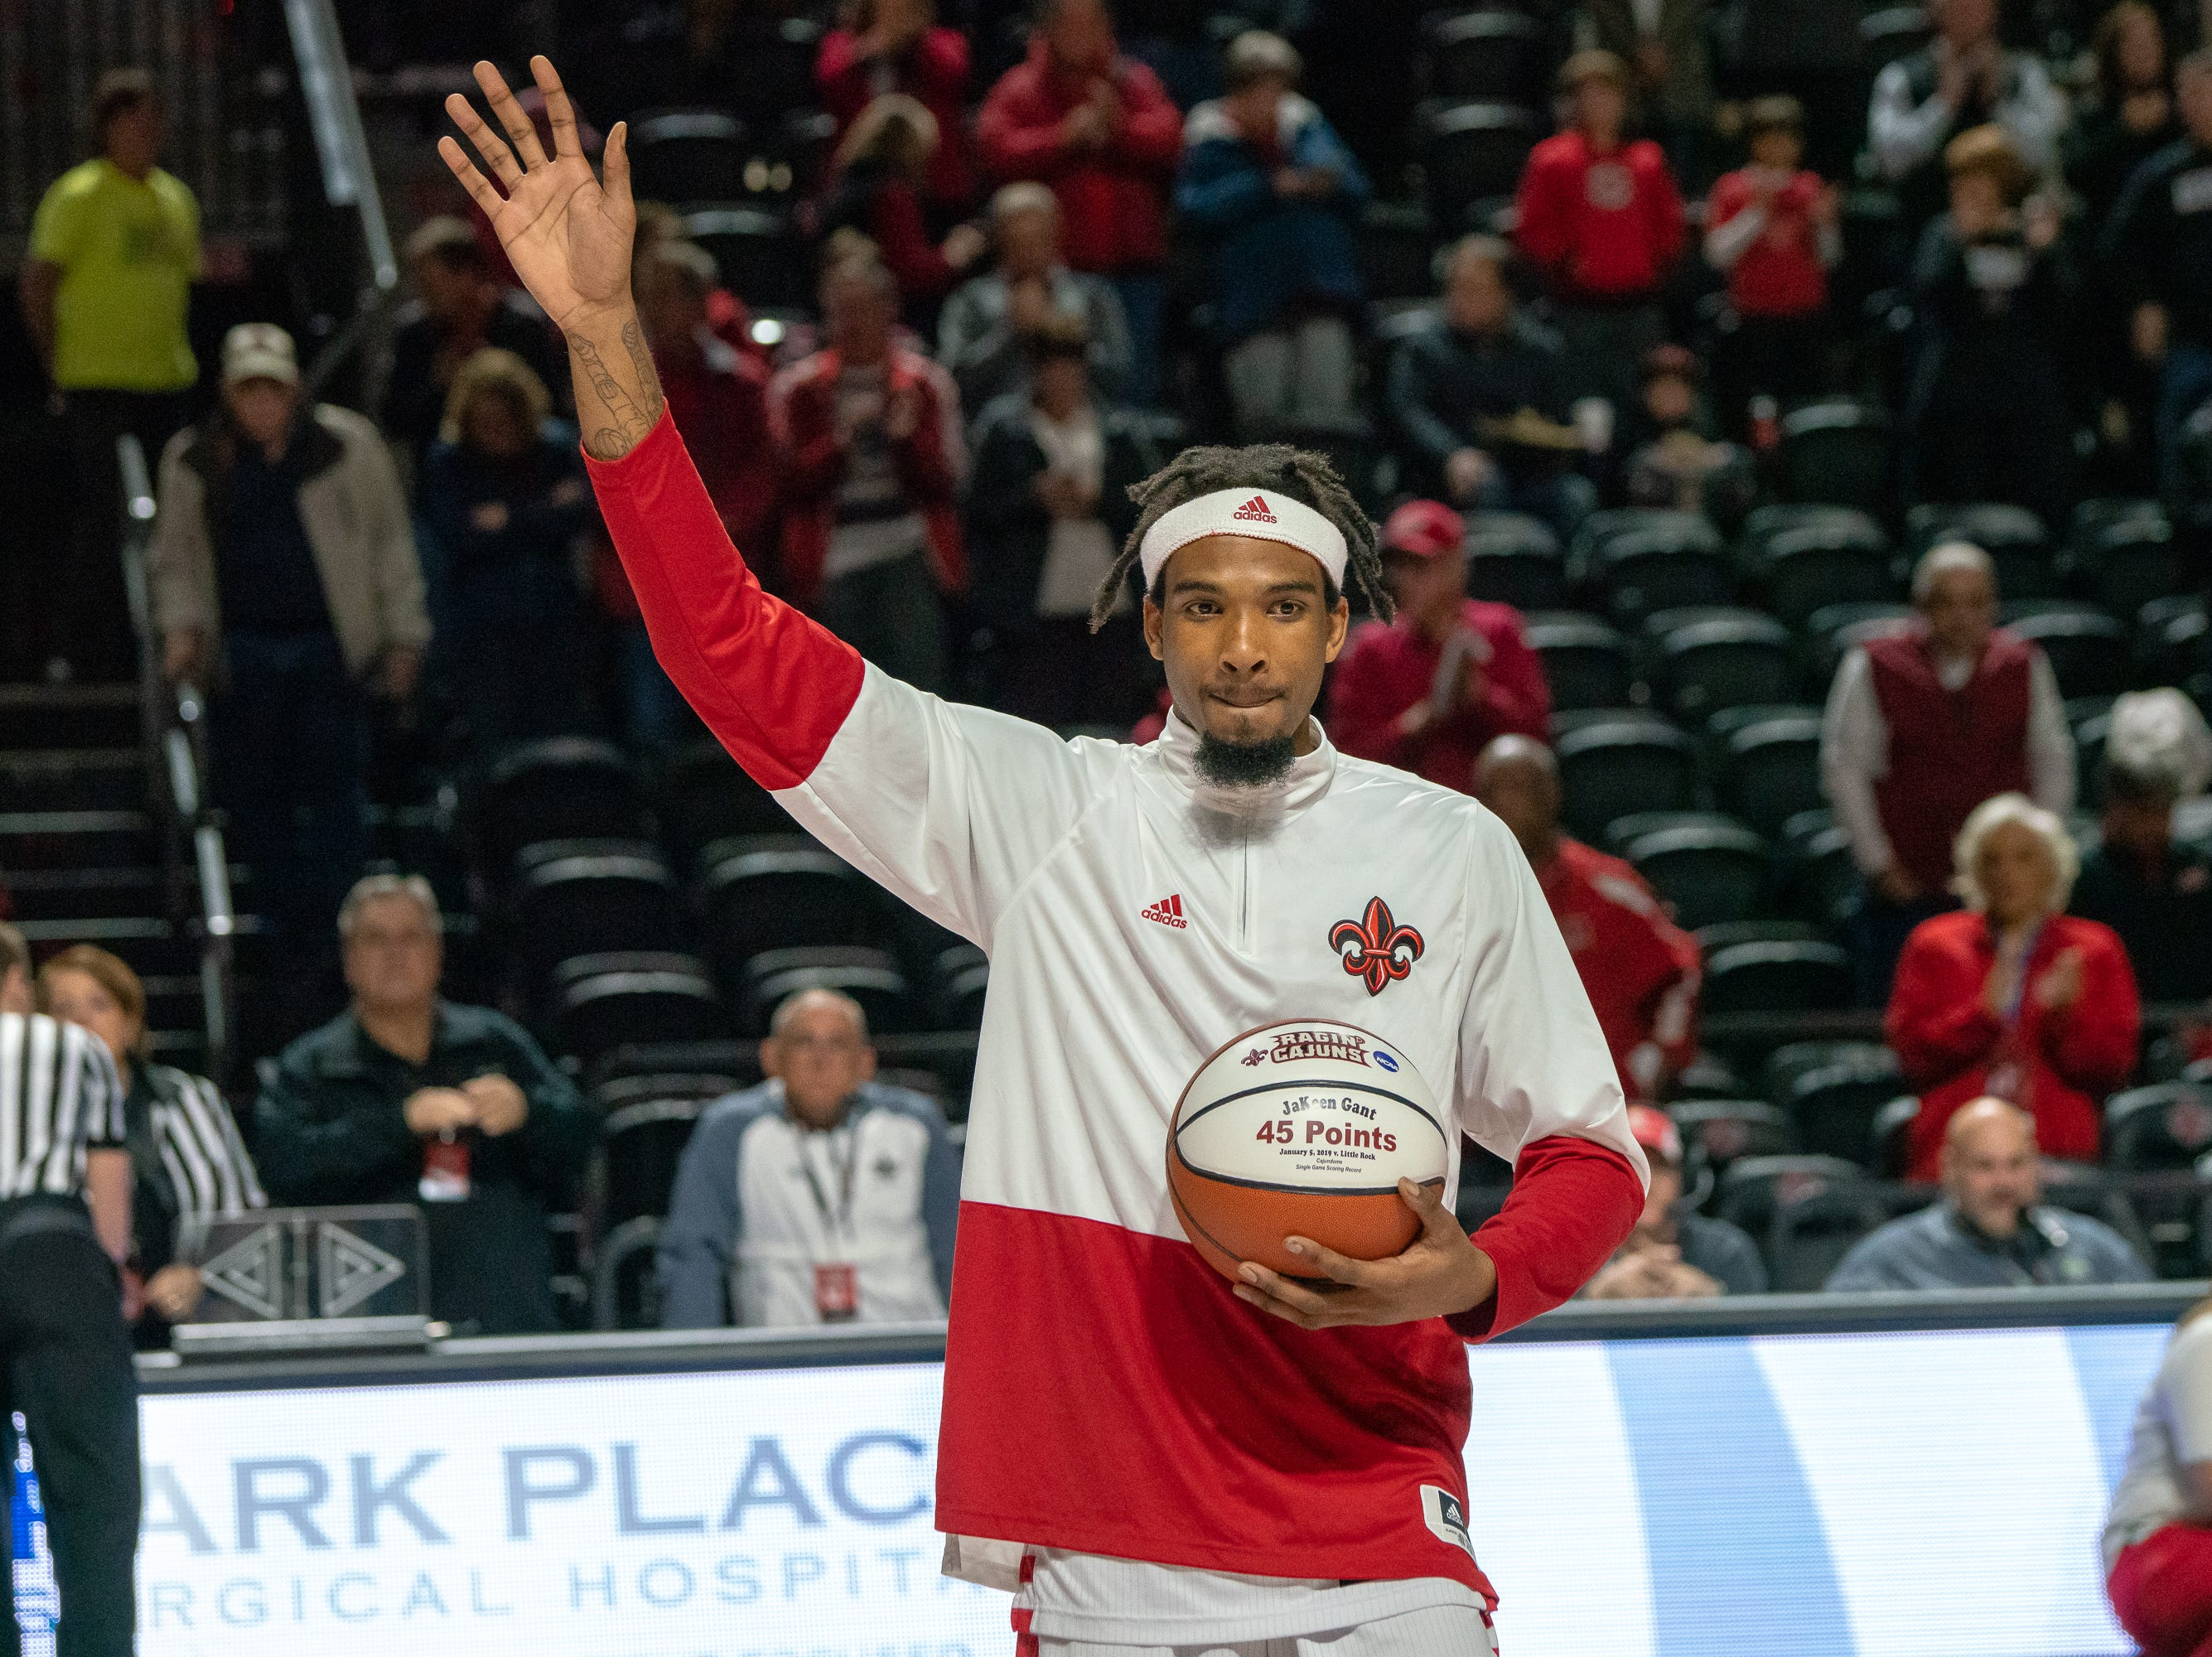 UL's JaKeenan Gant thanks the crowd before the game as the Ragin' Cajuns take on the Troy Trojans at the Cajundome on Jan. 26, 2019.